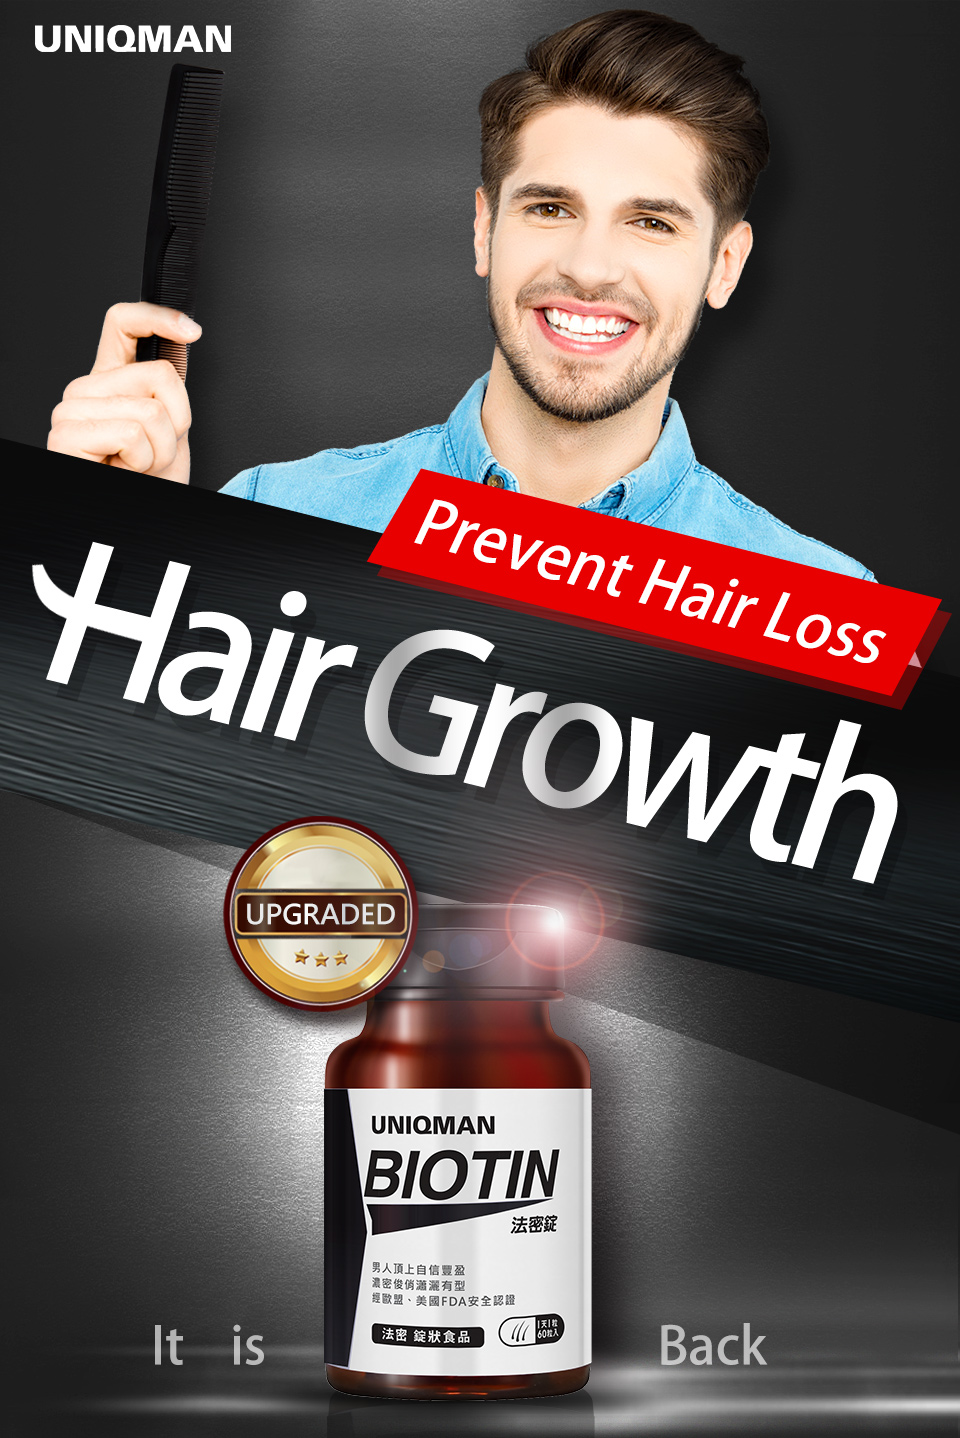 UNIQMAN Biotin contains white cynanchum that makes you look younger